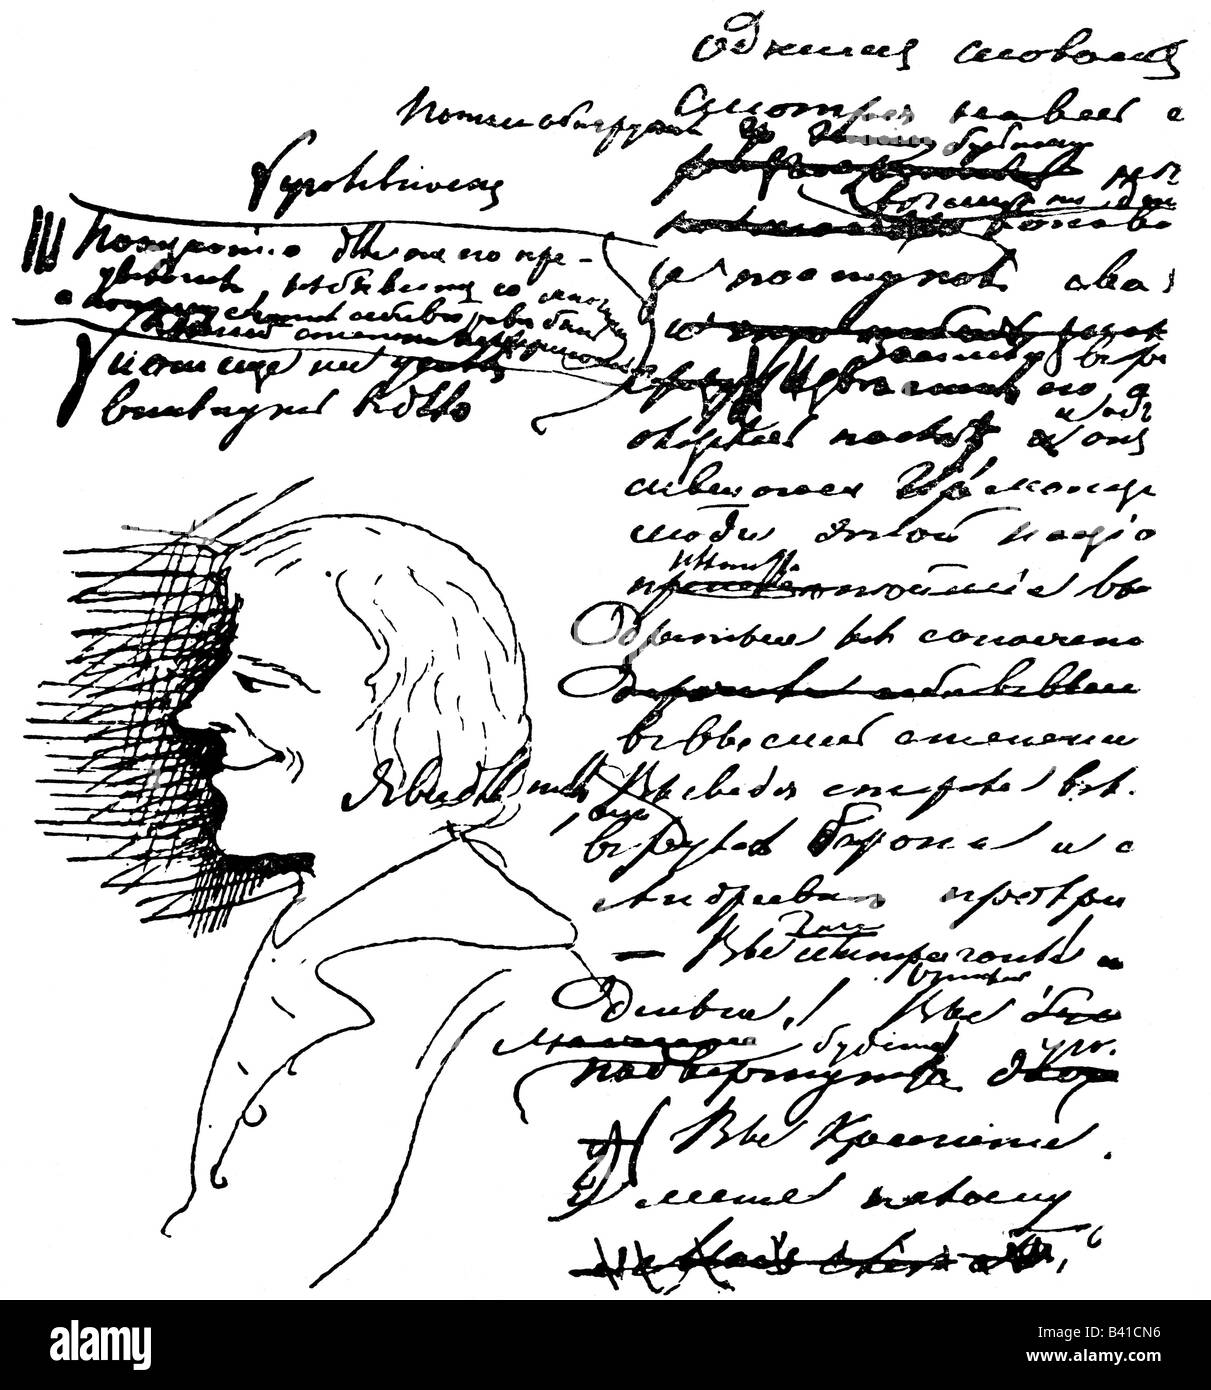 Dostoevsky, Fyodor Mikhailovich, 11.11.1821 - 9.2.1881, Russian author / writer, handwriting and drawing, 19th century, - Stock Image